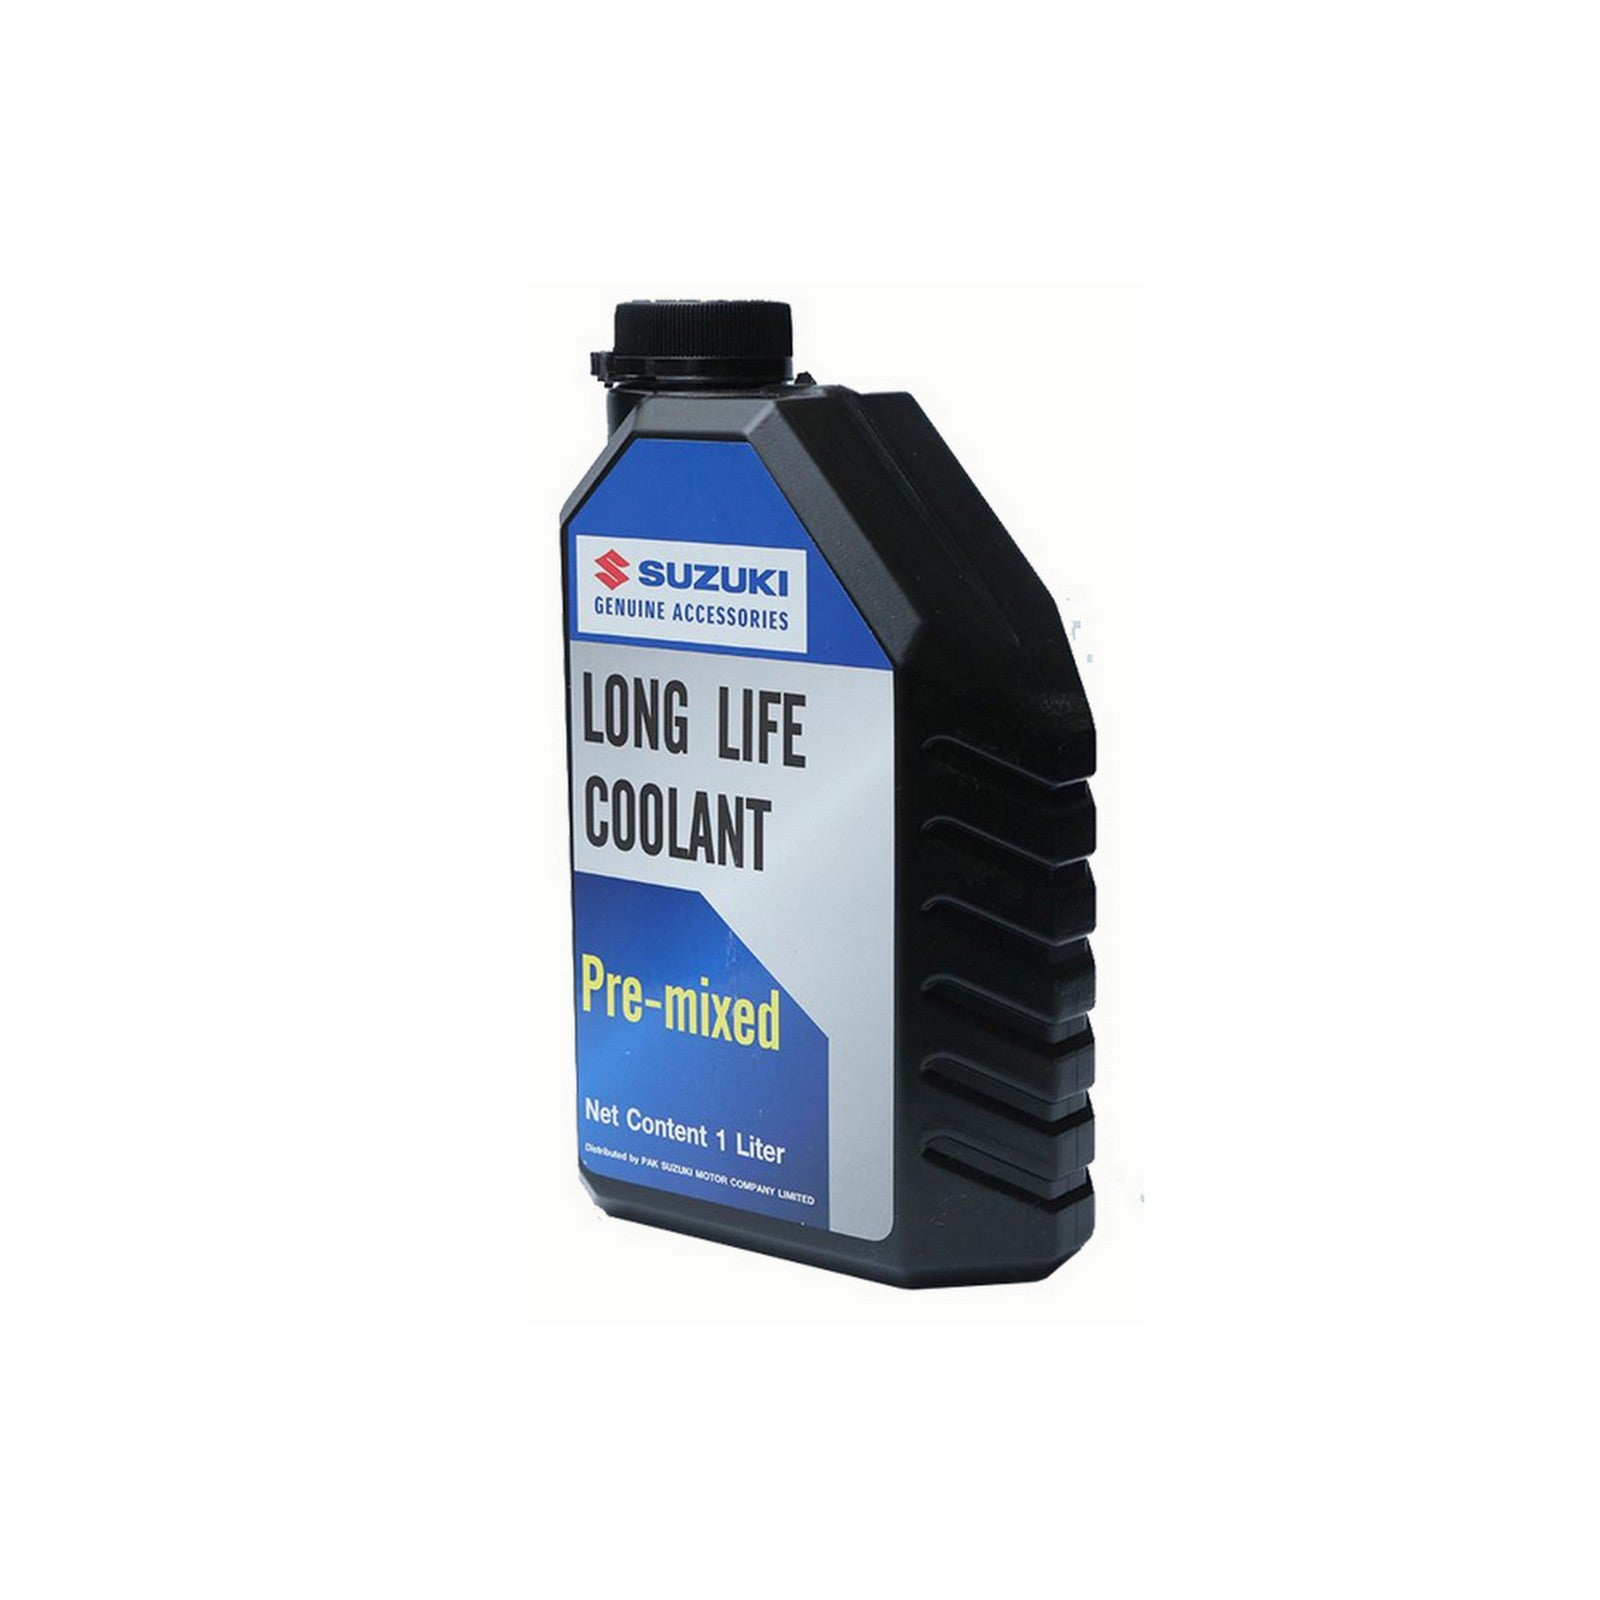 RADIATOR COOLANT PRE-MIXED LONG LIFE SUZUKI GENUINE - 1 LTR.